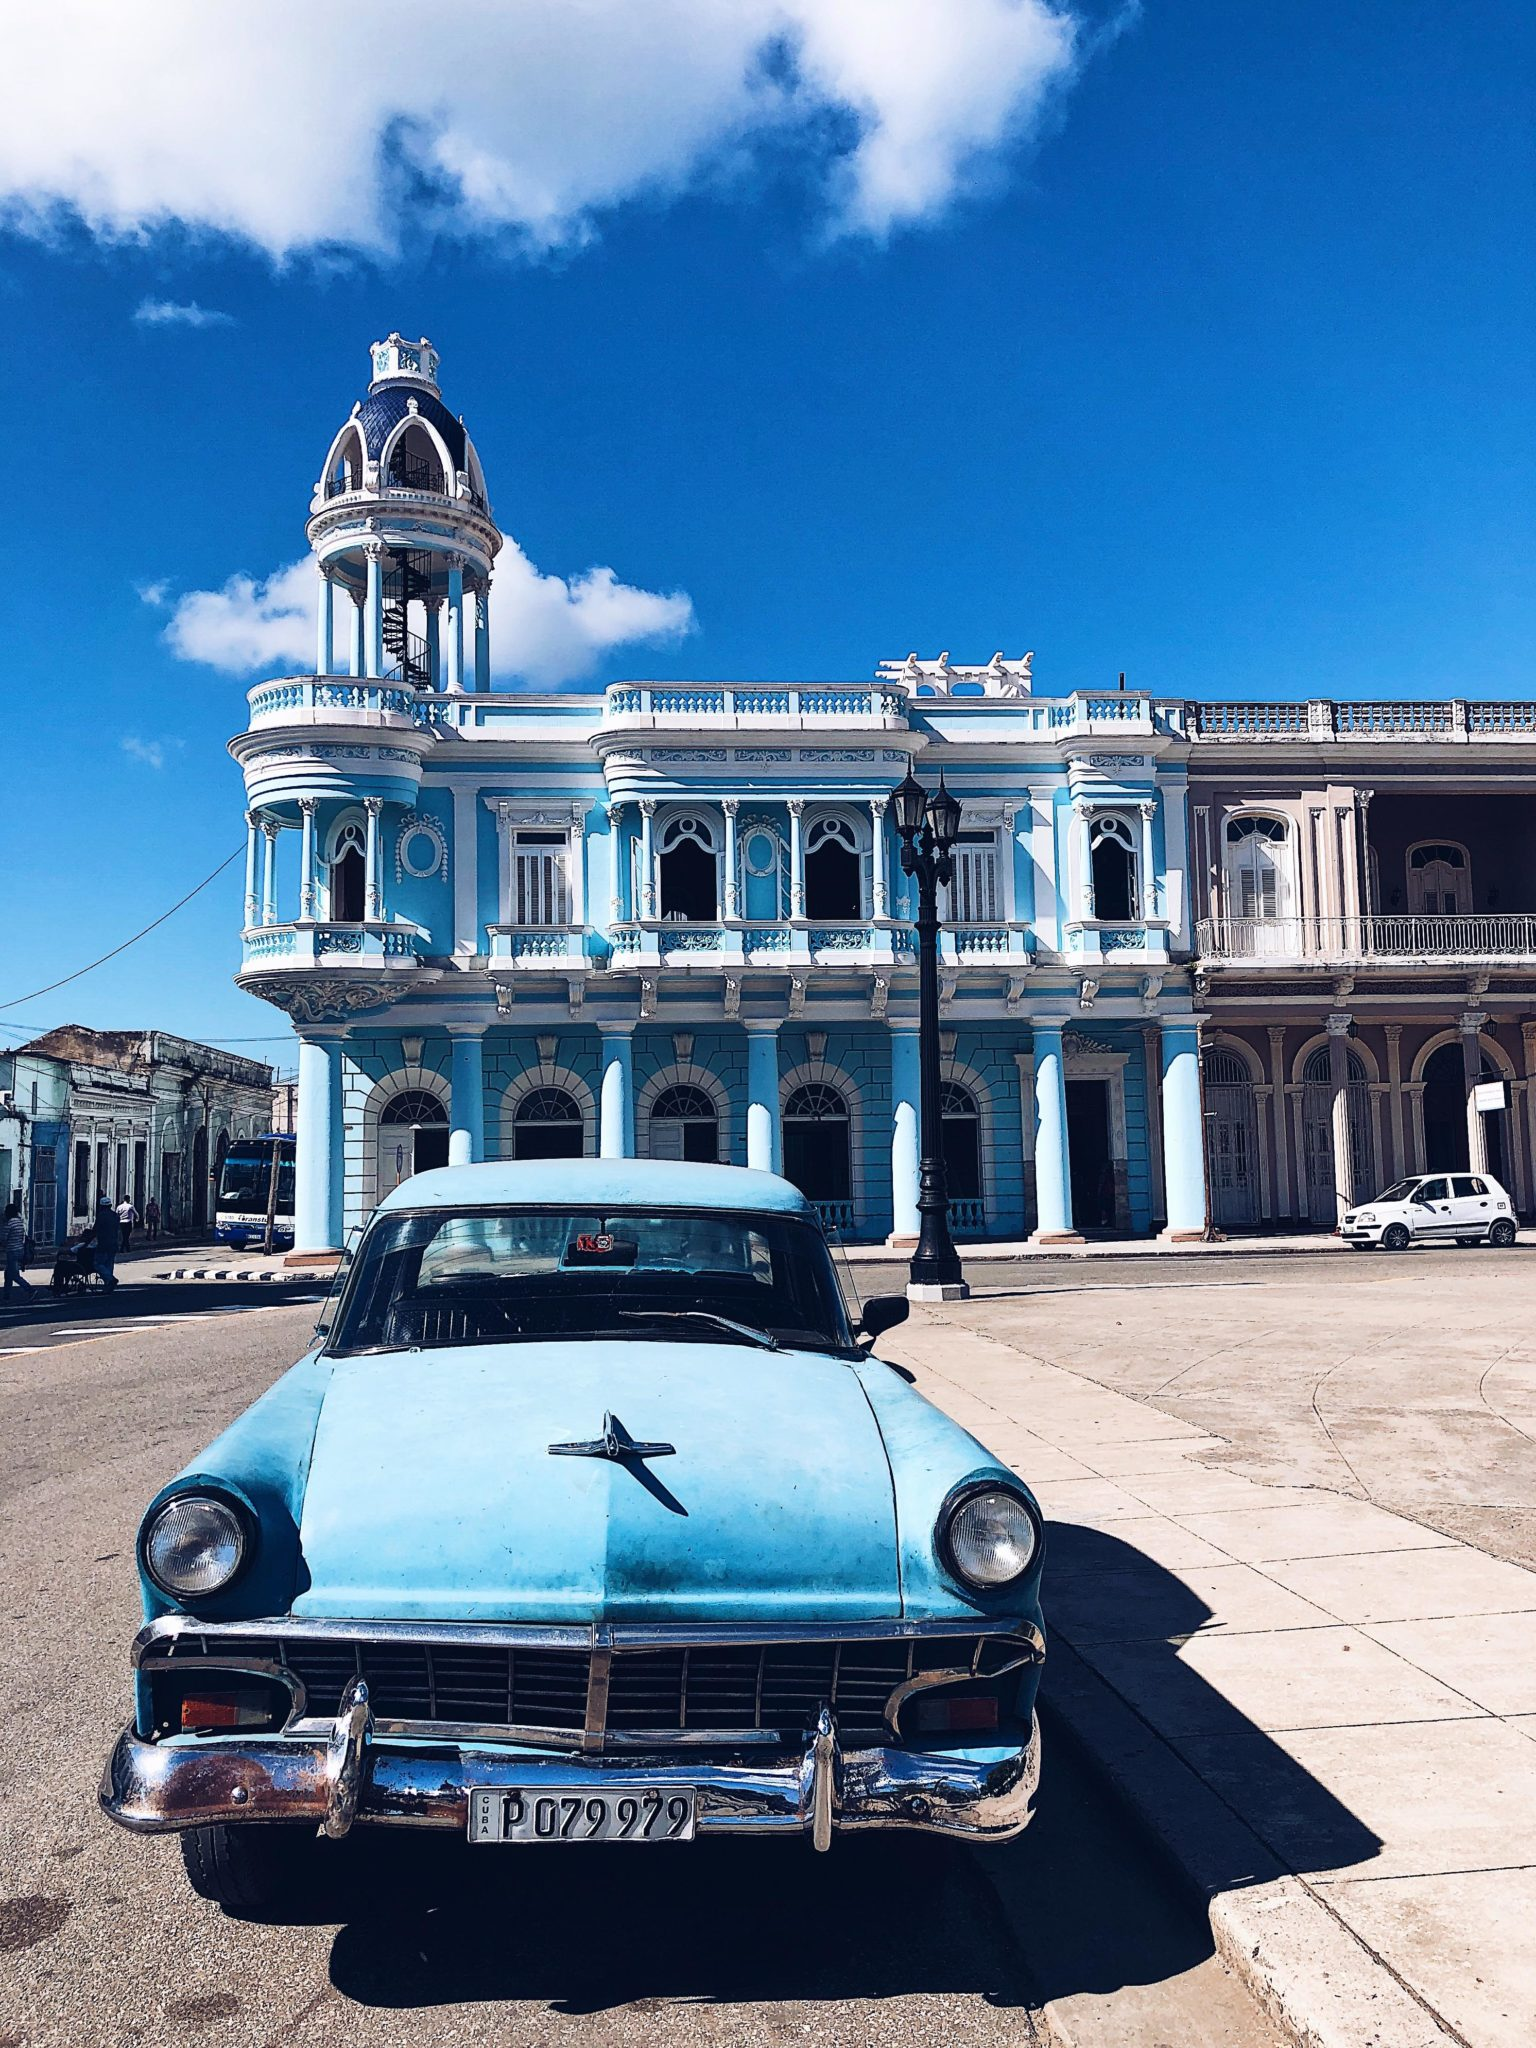 Cienfuegos - Jose Mari - Best Things to do in Cuba